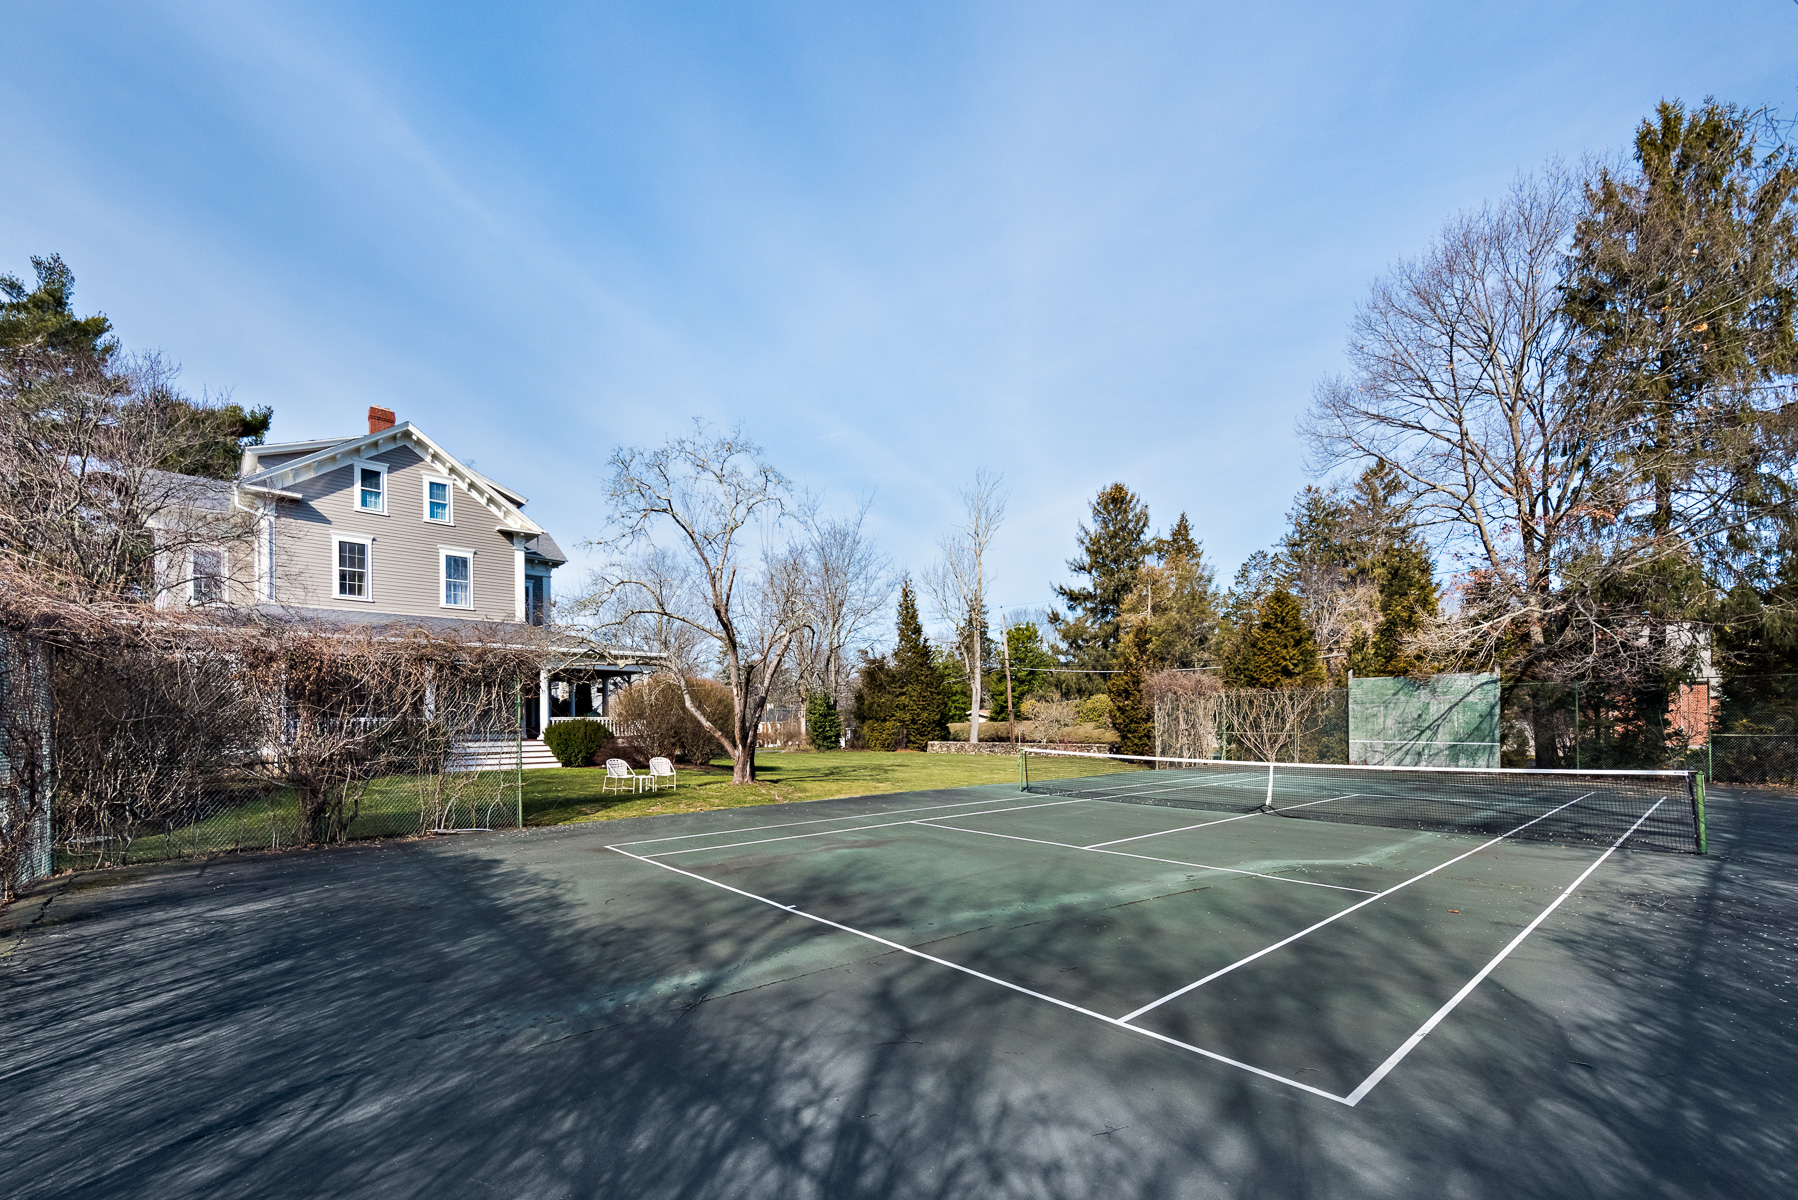 Single Family Home for Sale at 129 RUMSTICK ROAD BARRINGTON, RHODE ISLAND 129 Rumstick Rd Barrington, Rhode Island 02806 United States